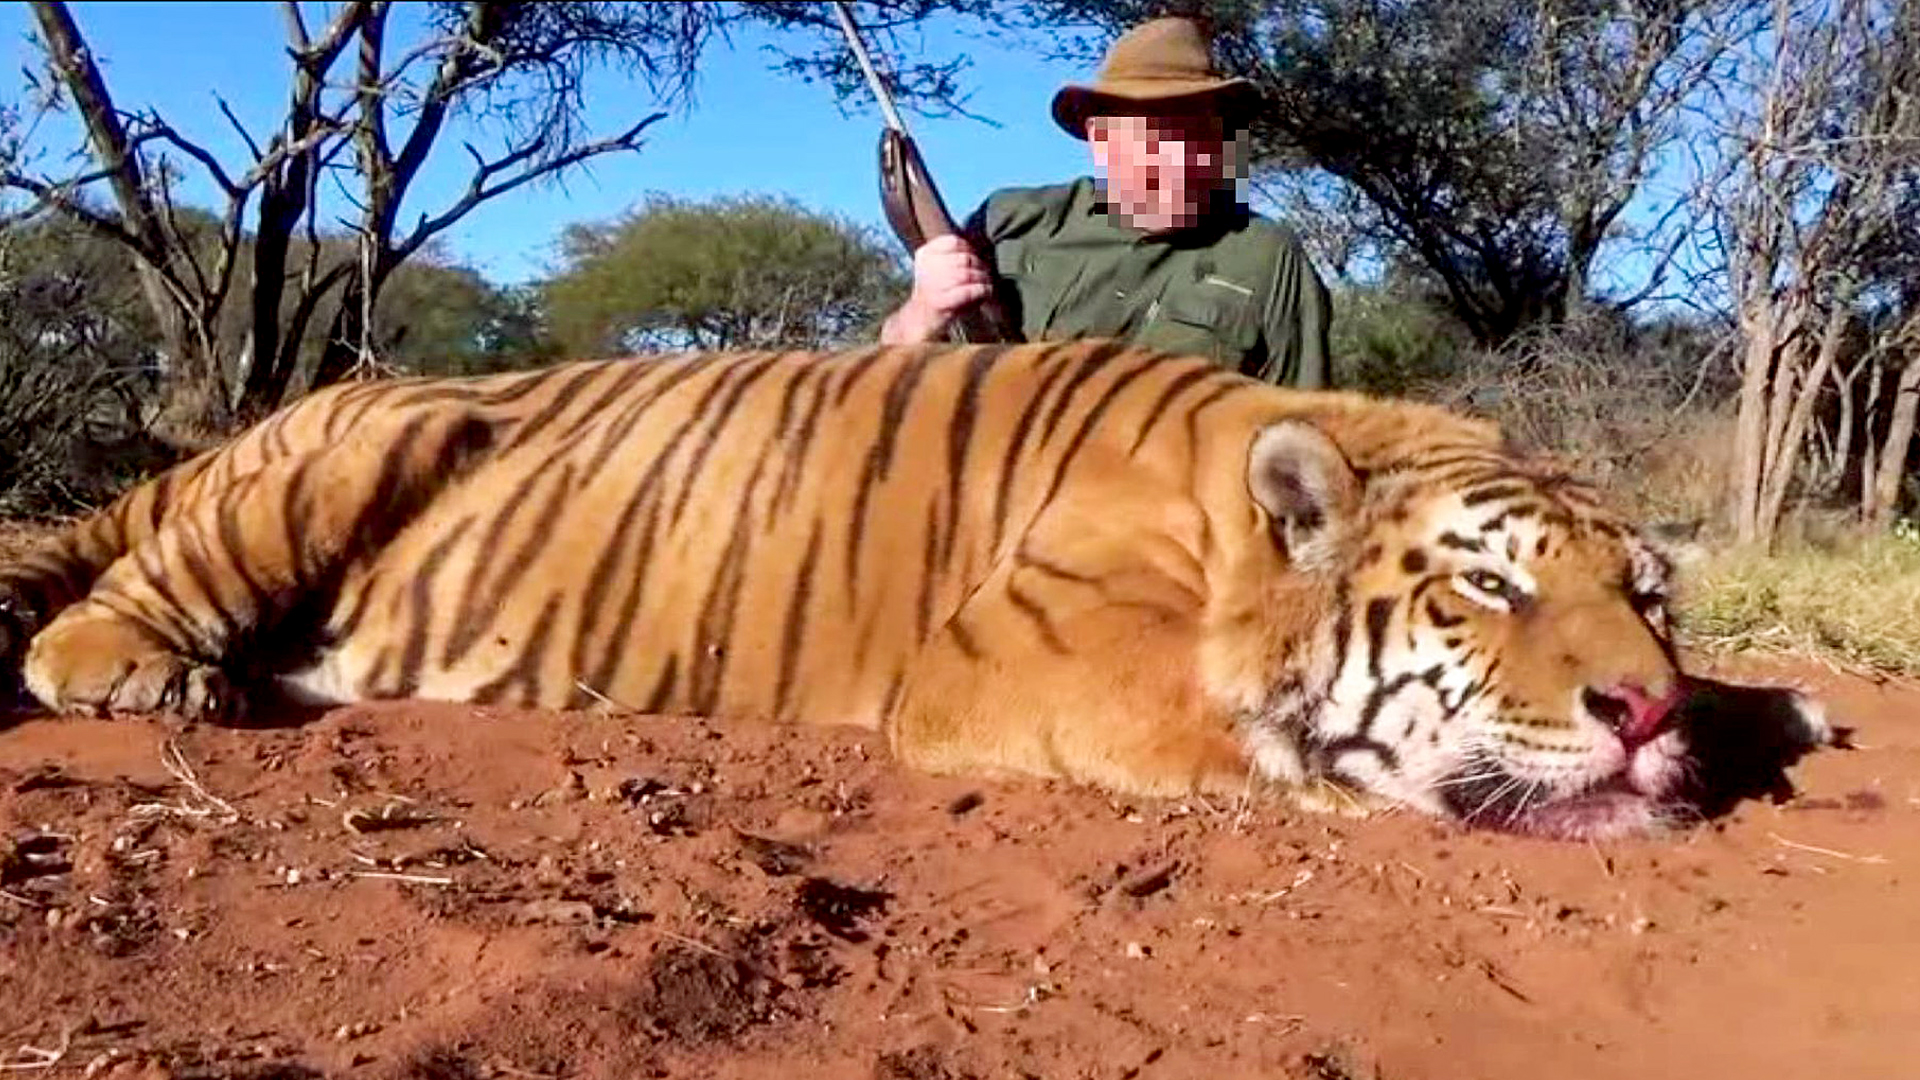 Slovak Hunter Faces Jail For Killing Endangered Tiger And Importing It Home - Zenger News